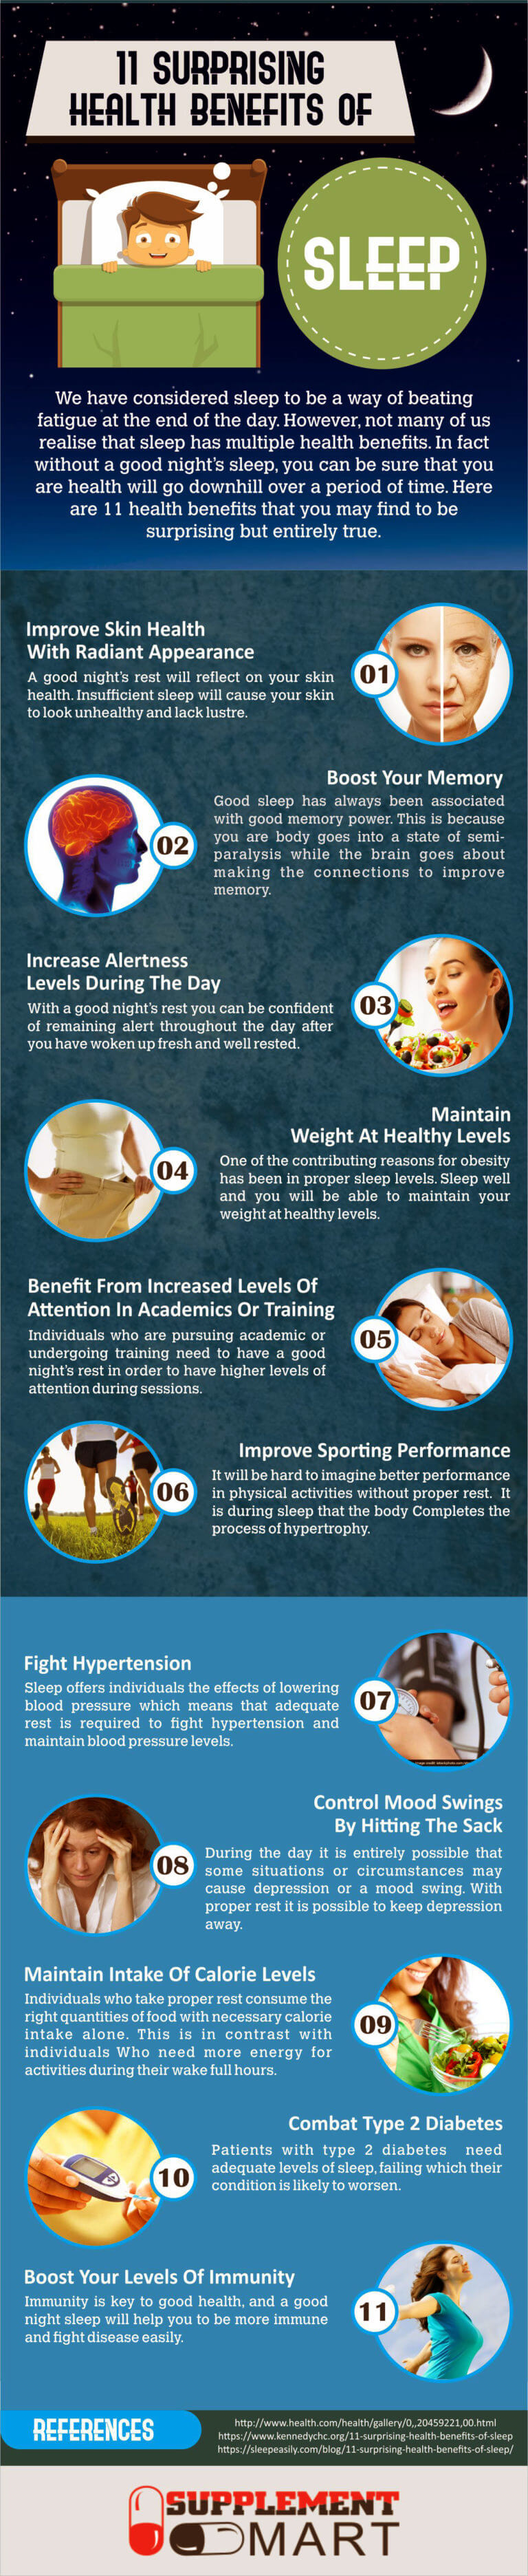 Surprising Health Benefits of Sleep